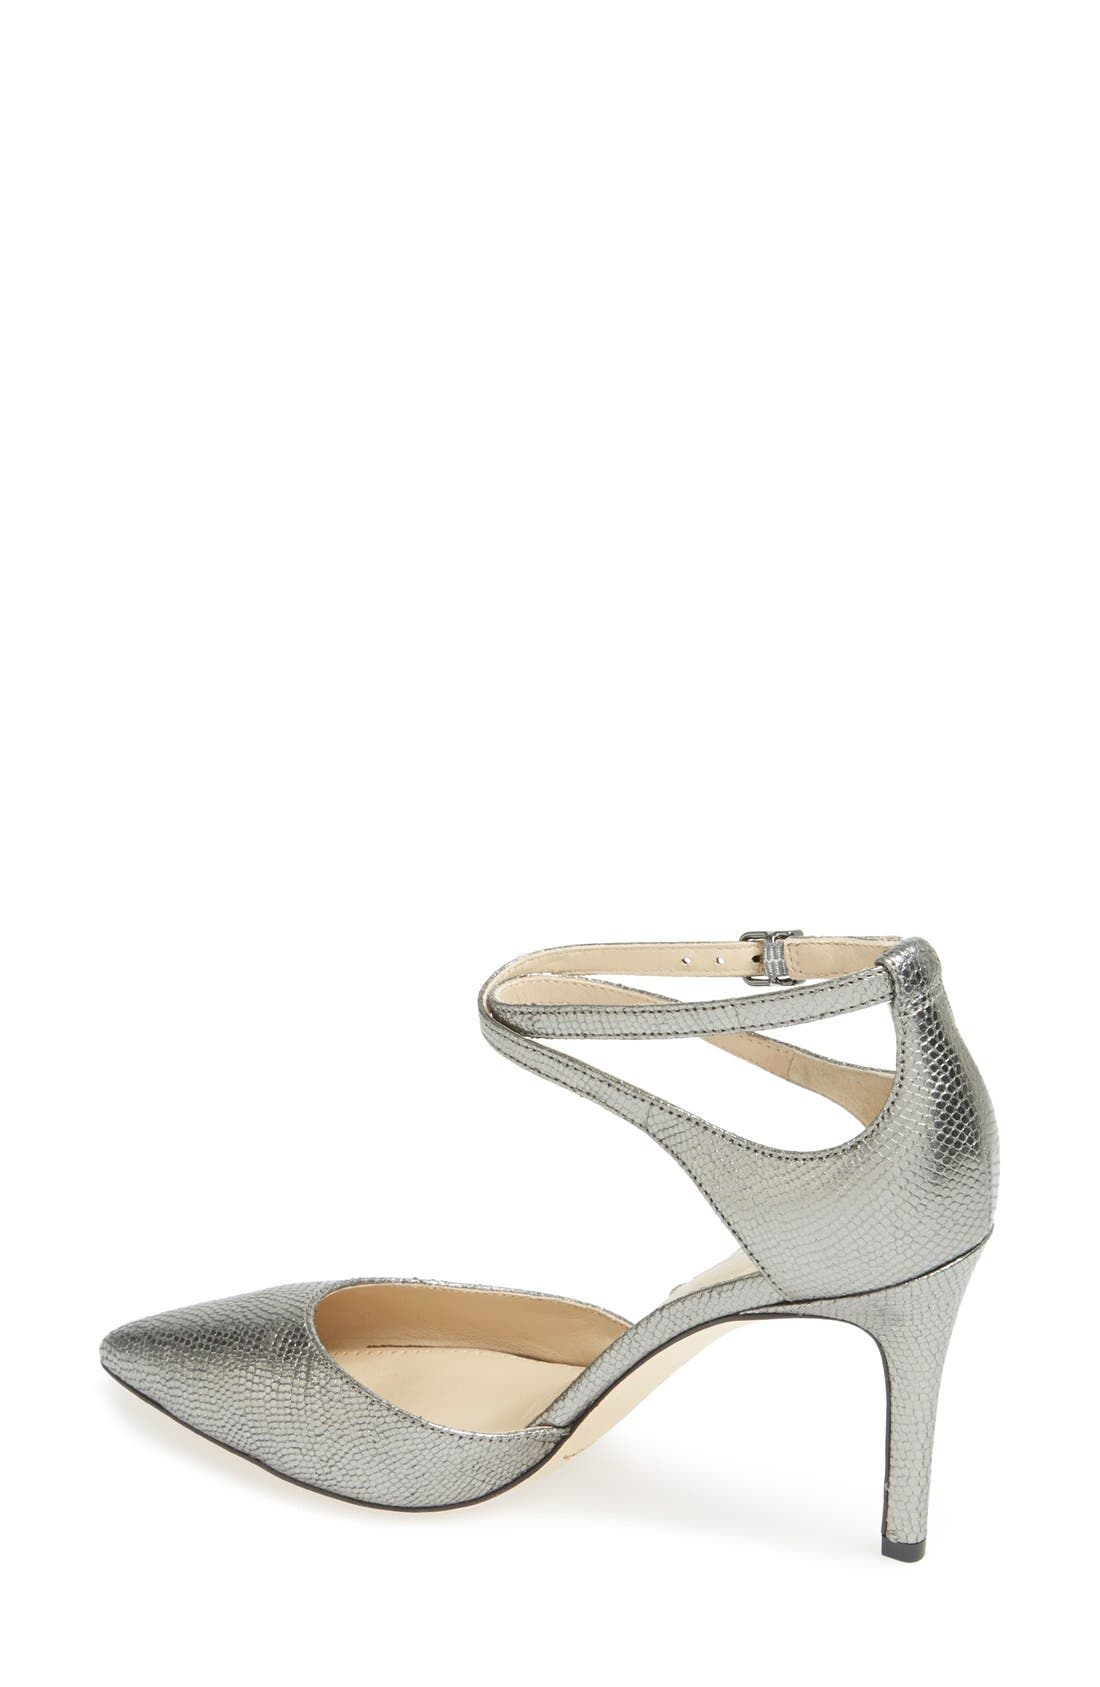 Alternate Image 2  - Via Spiga 'Chera' Pump (Women)